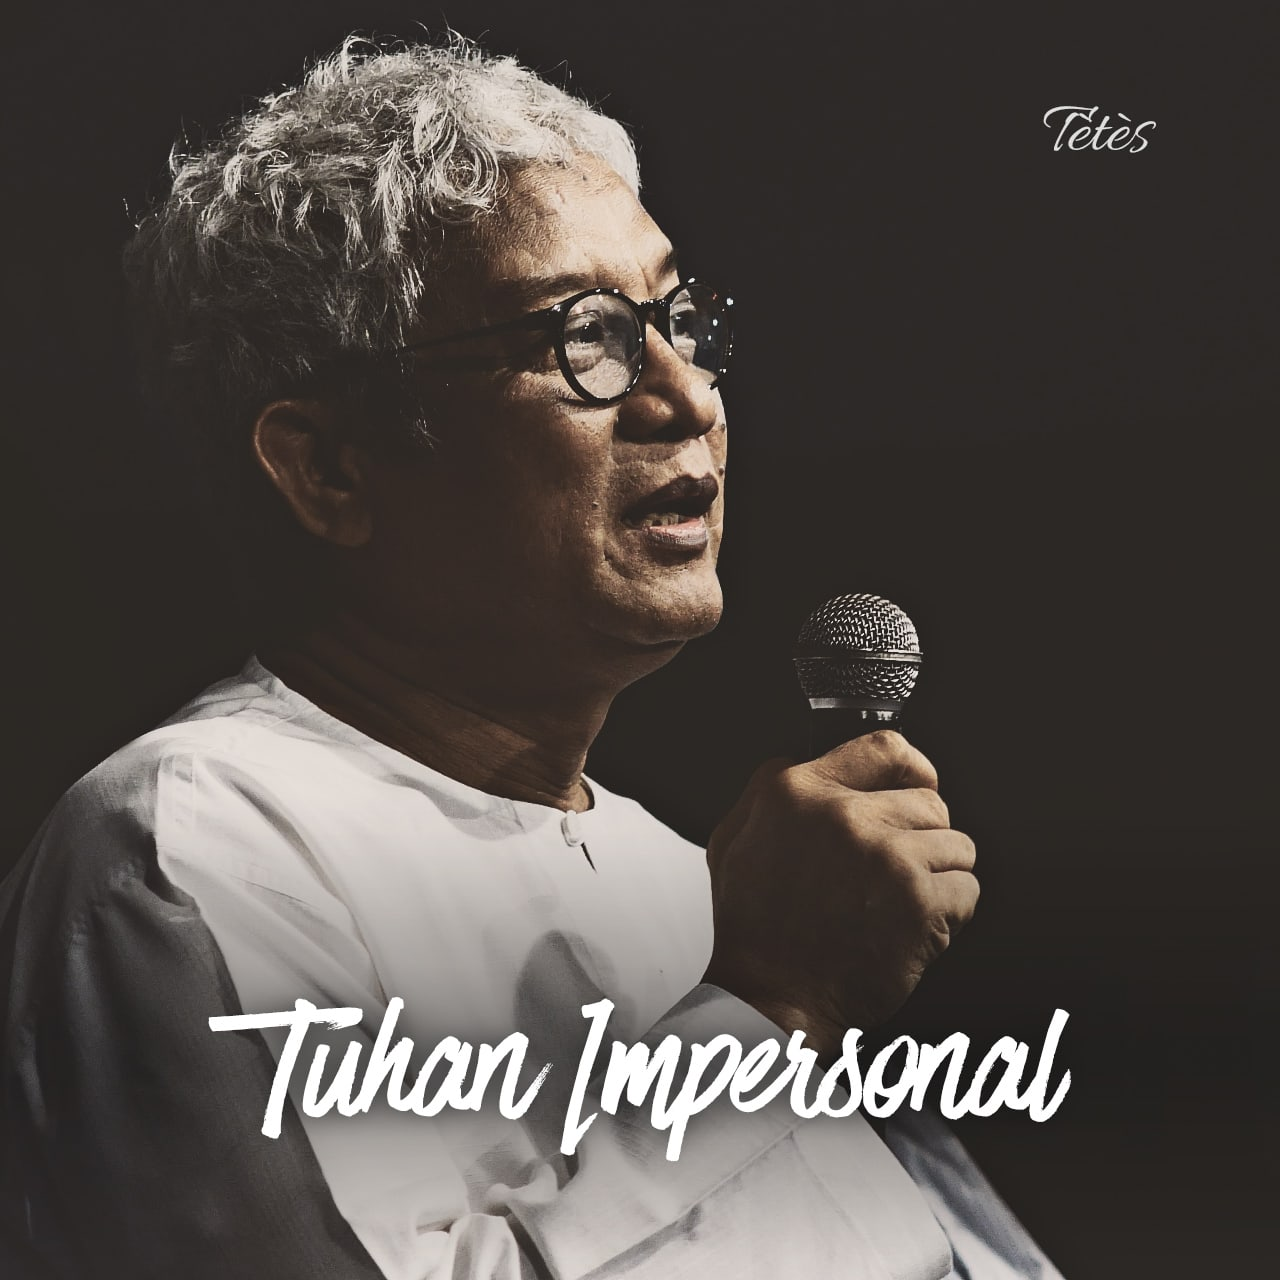 Tuhan Impersonal